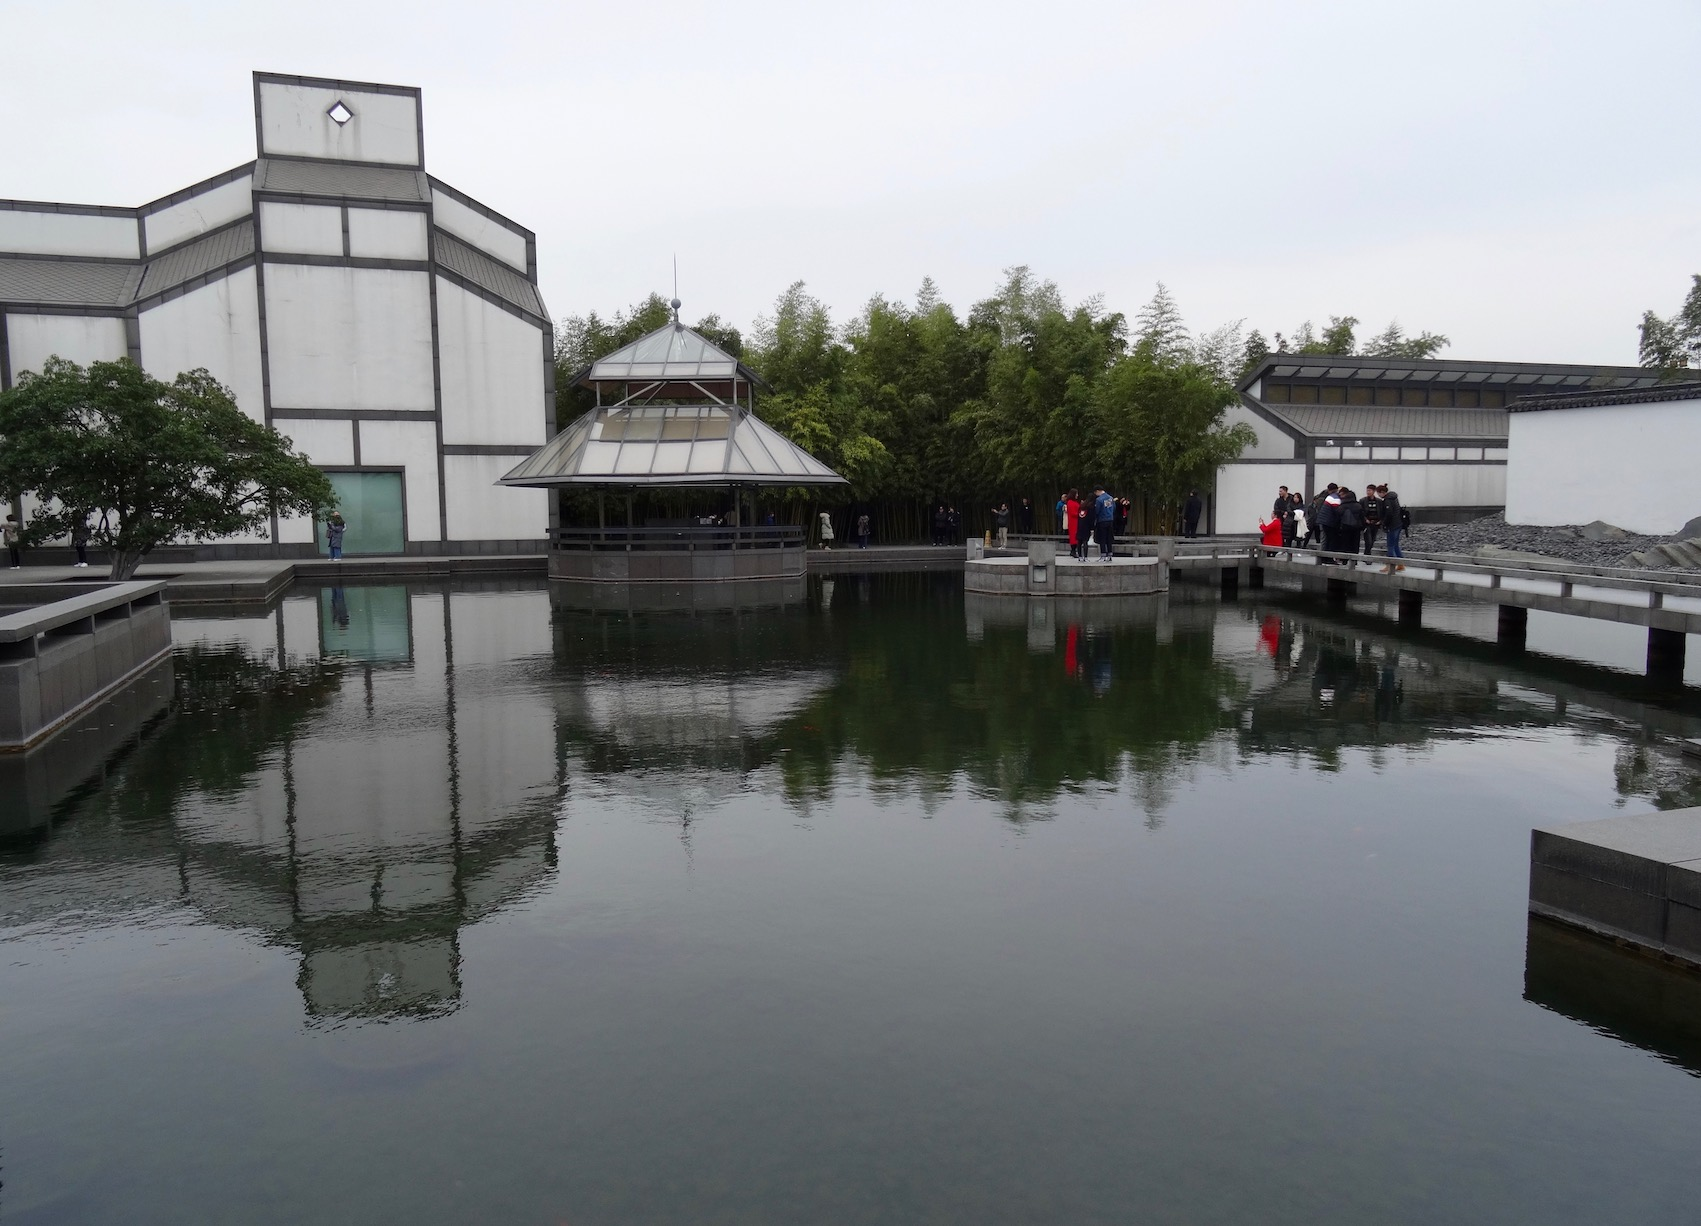 Fish pond Suzhou Museum Jiangsu Province China